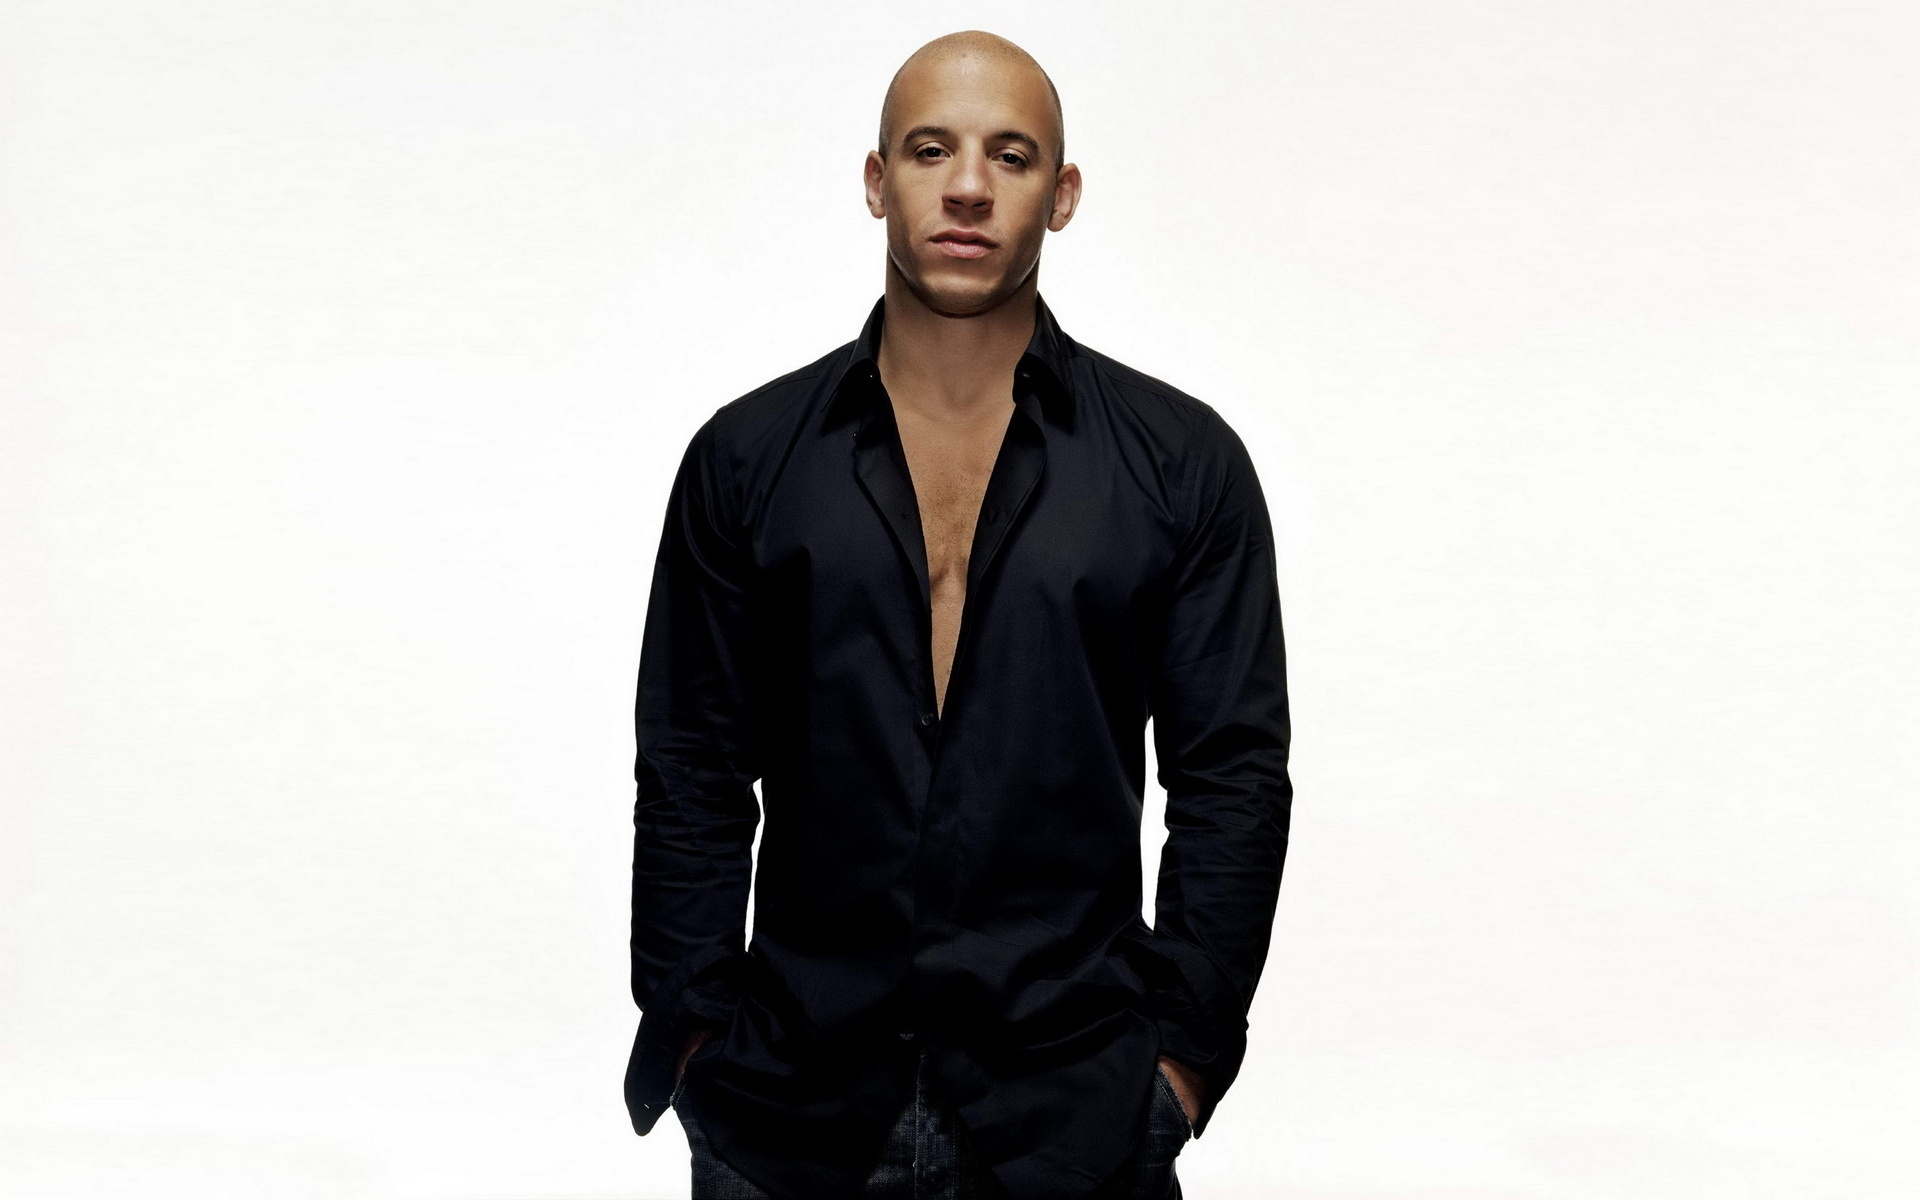 vin diesel full hd wallpaper and background image | 1920x1200 | id